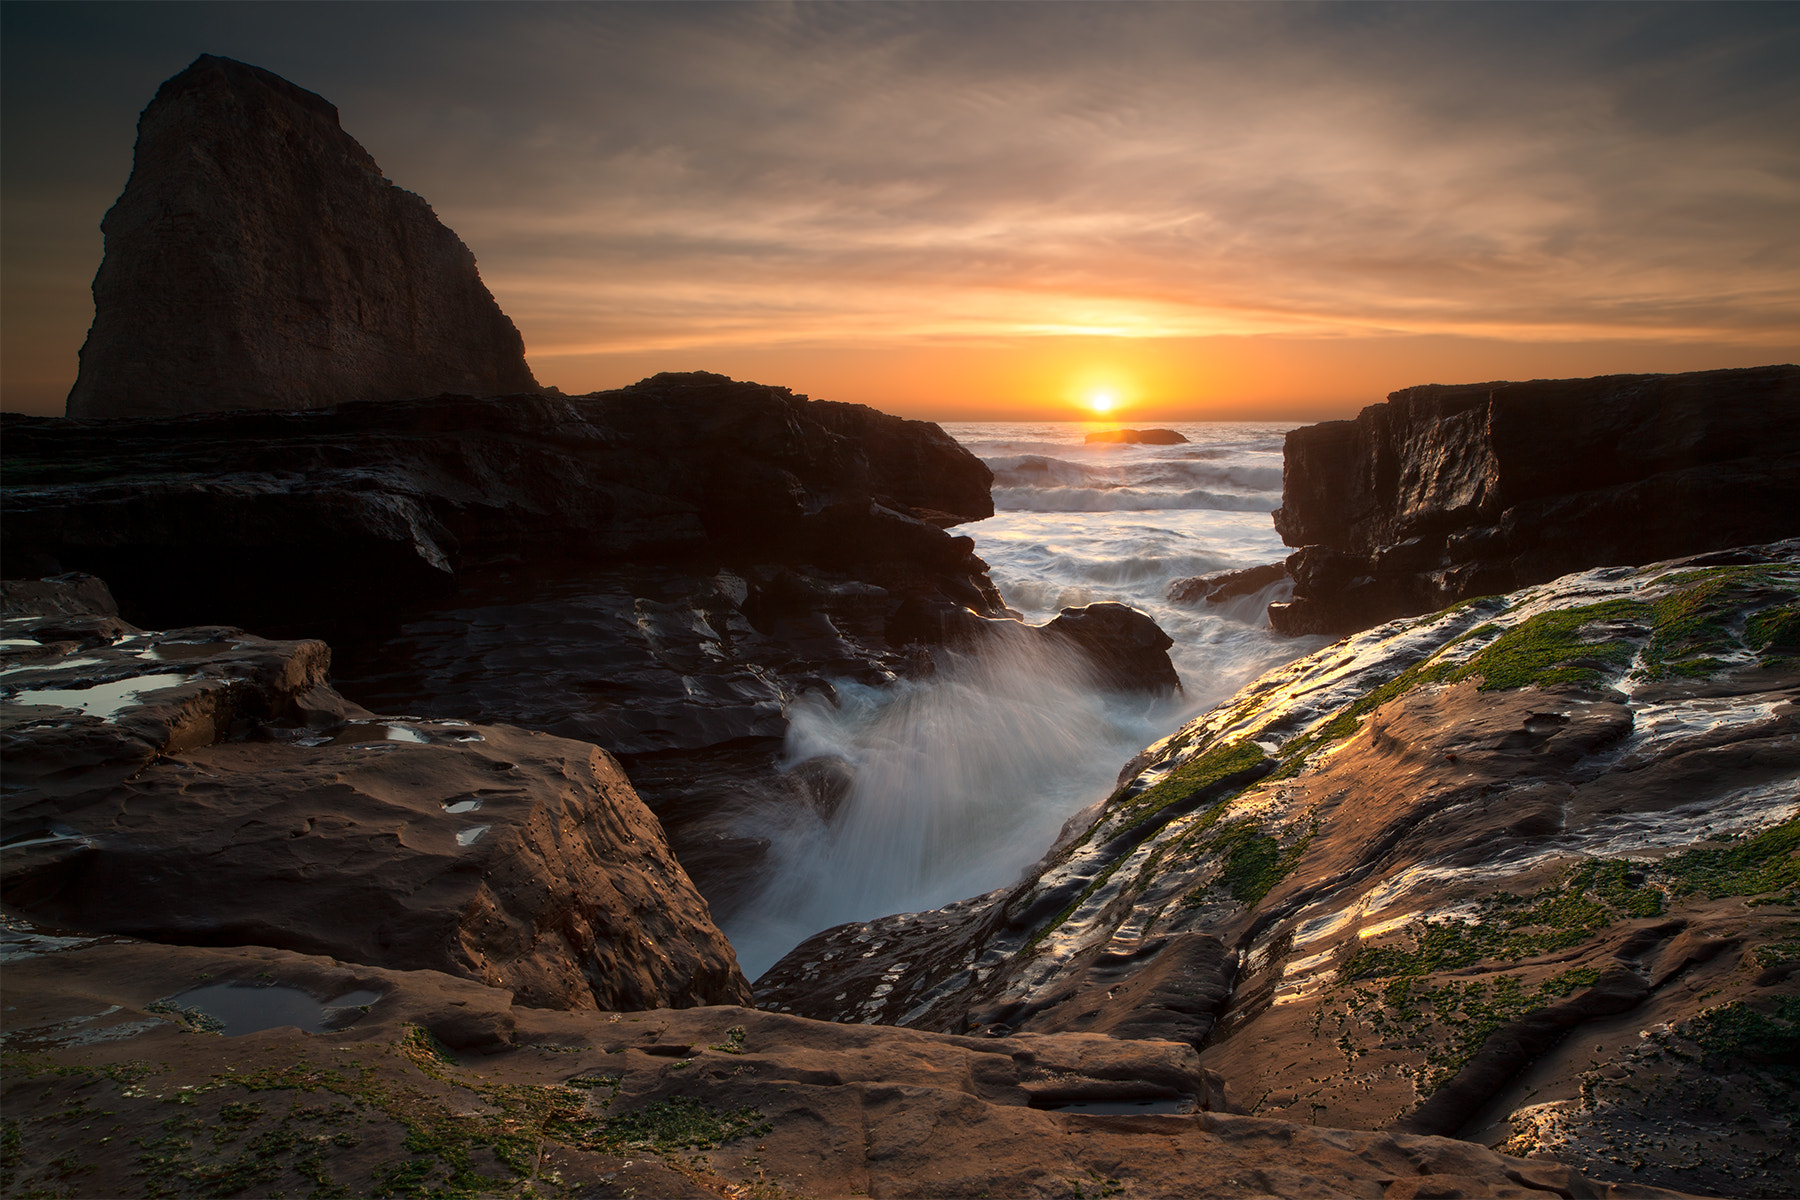 Photograph Sunset at Hole in the Wall Beach by Joe Ganster on 500px